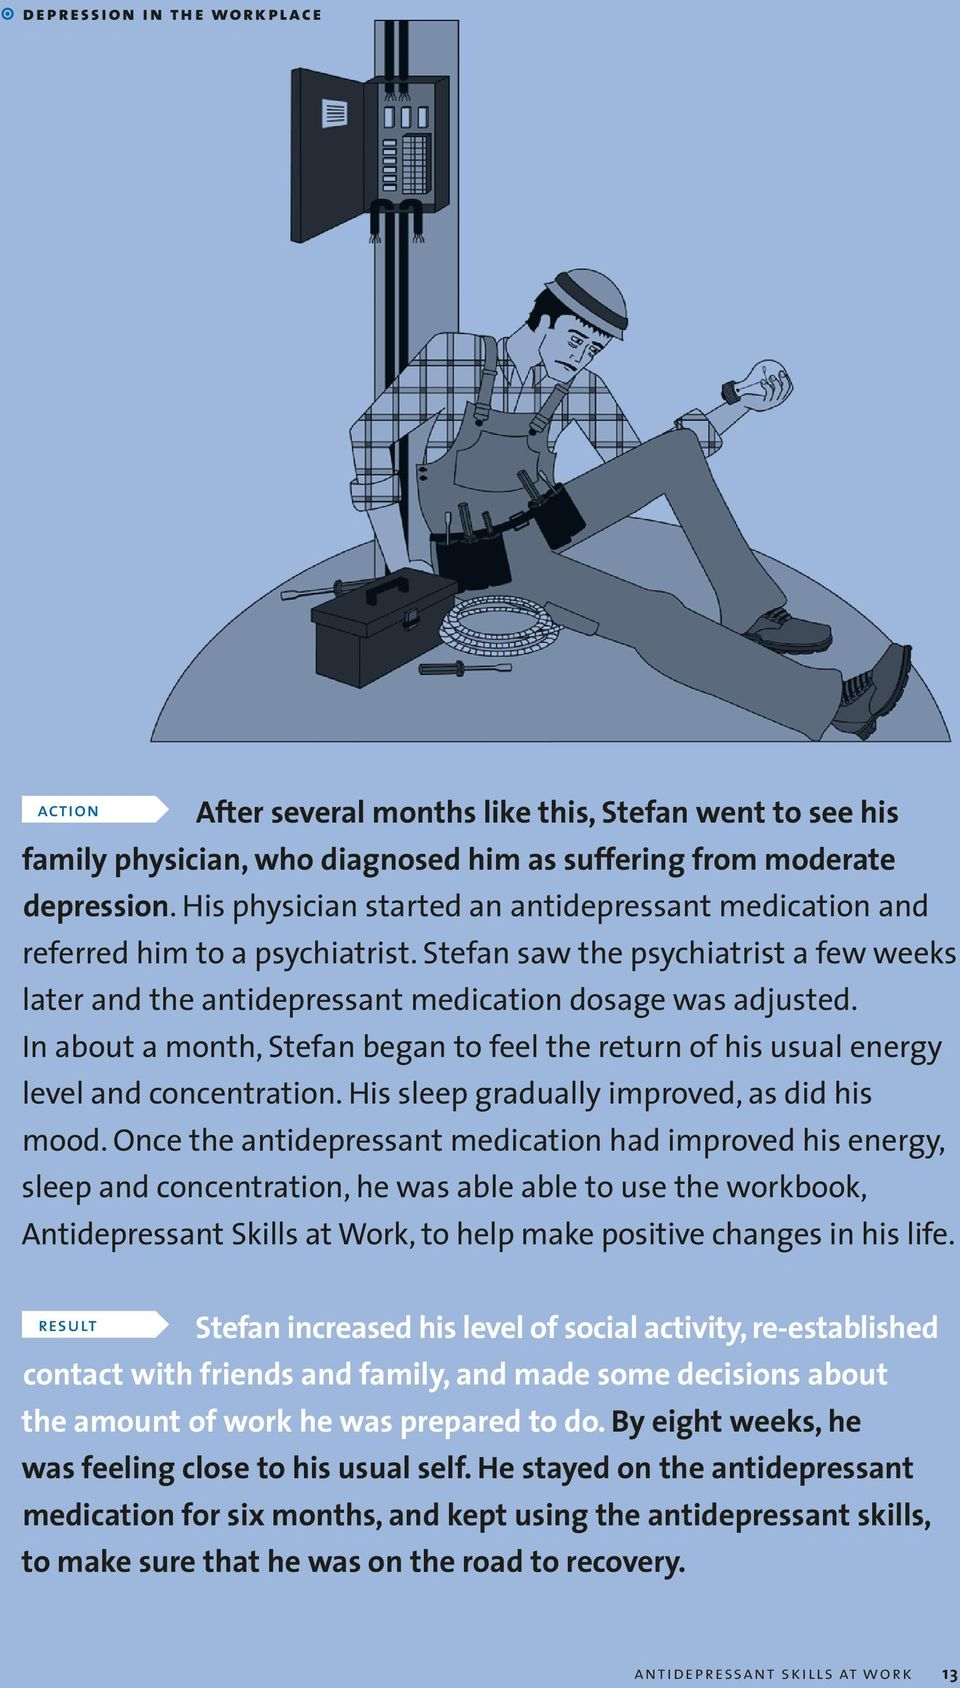 In about a month, Stefan began to feel the return of his usual energy level and concentration. His sleep gradually improved, as did his mood.